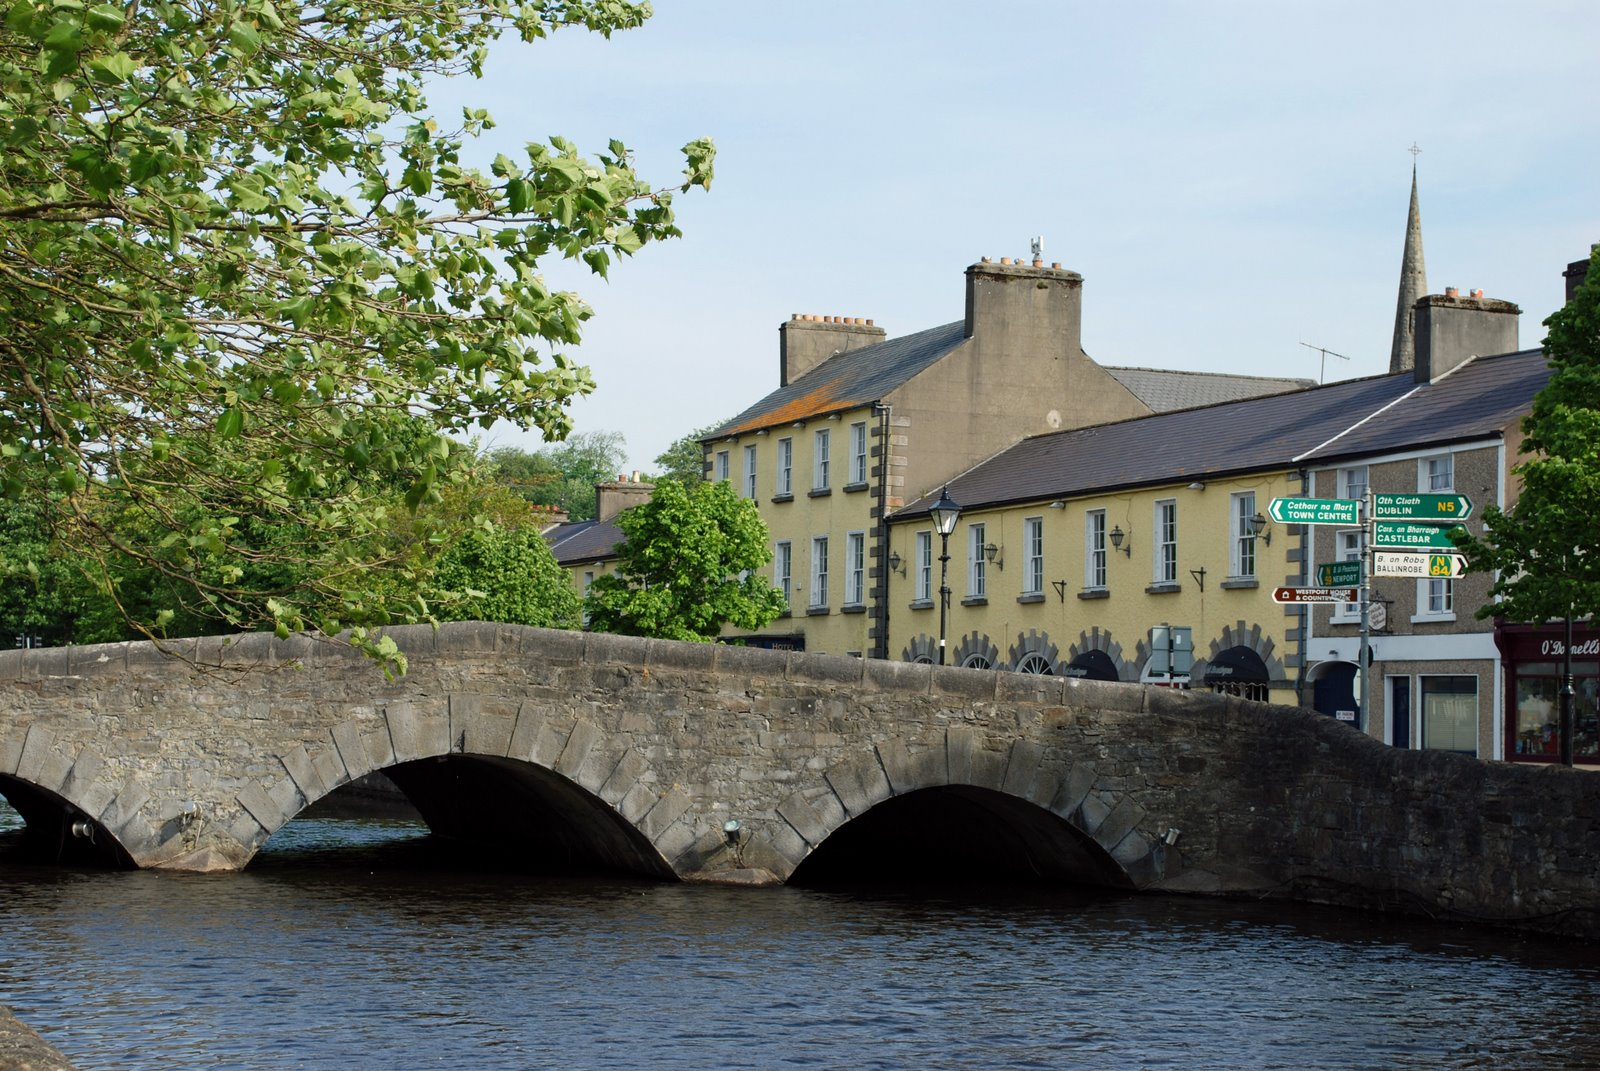 bridge over carrowbeg river, westport, ireland